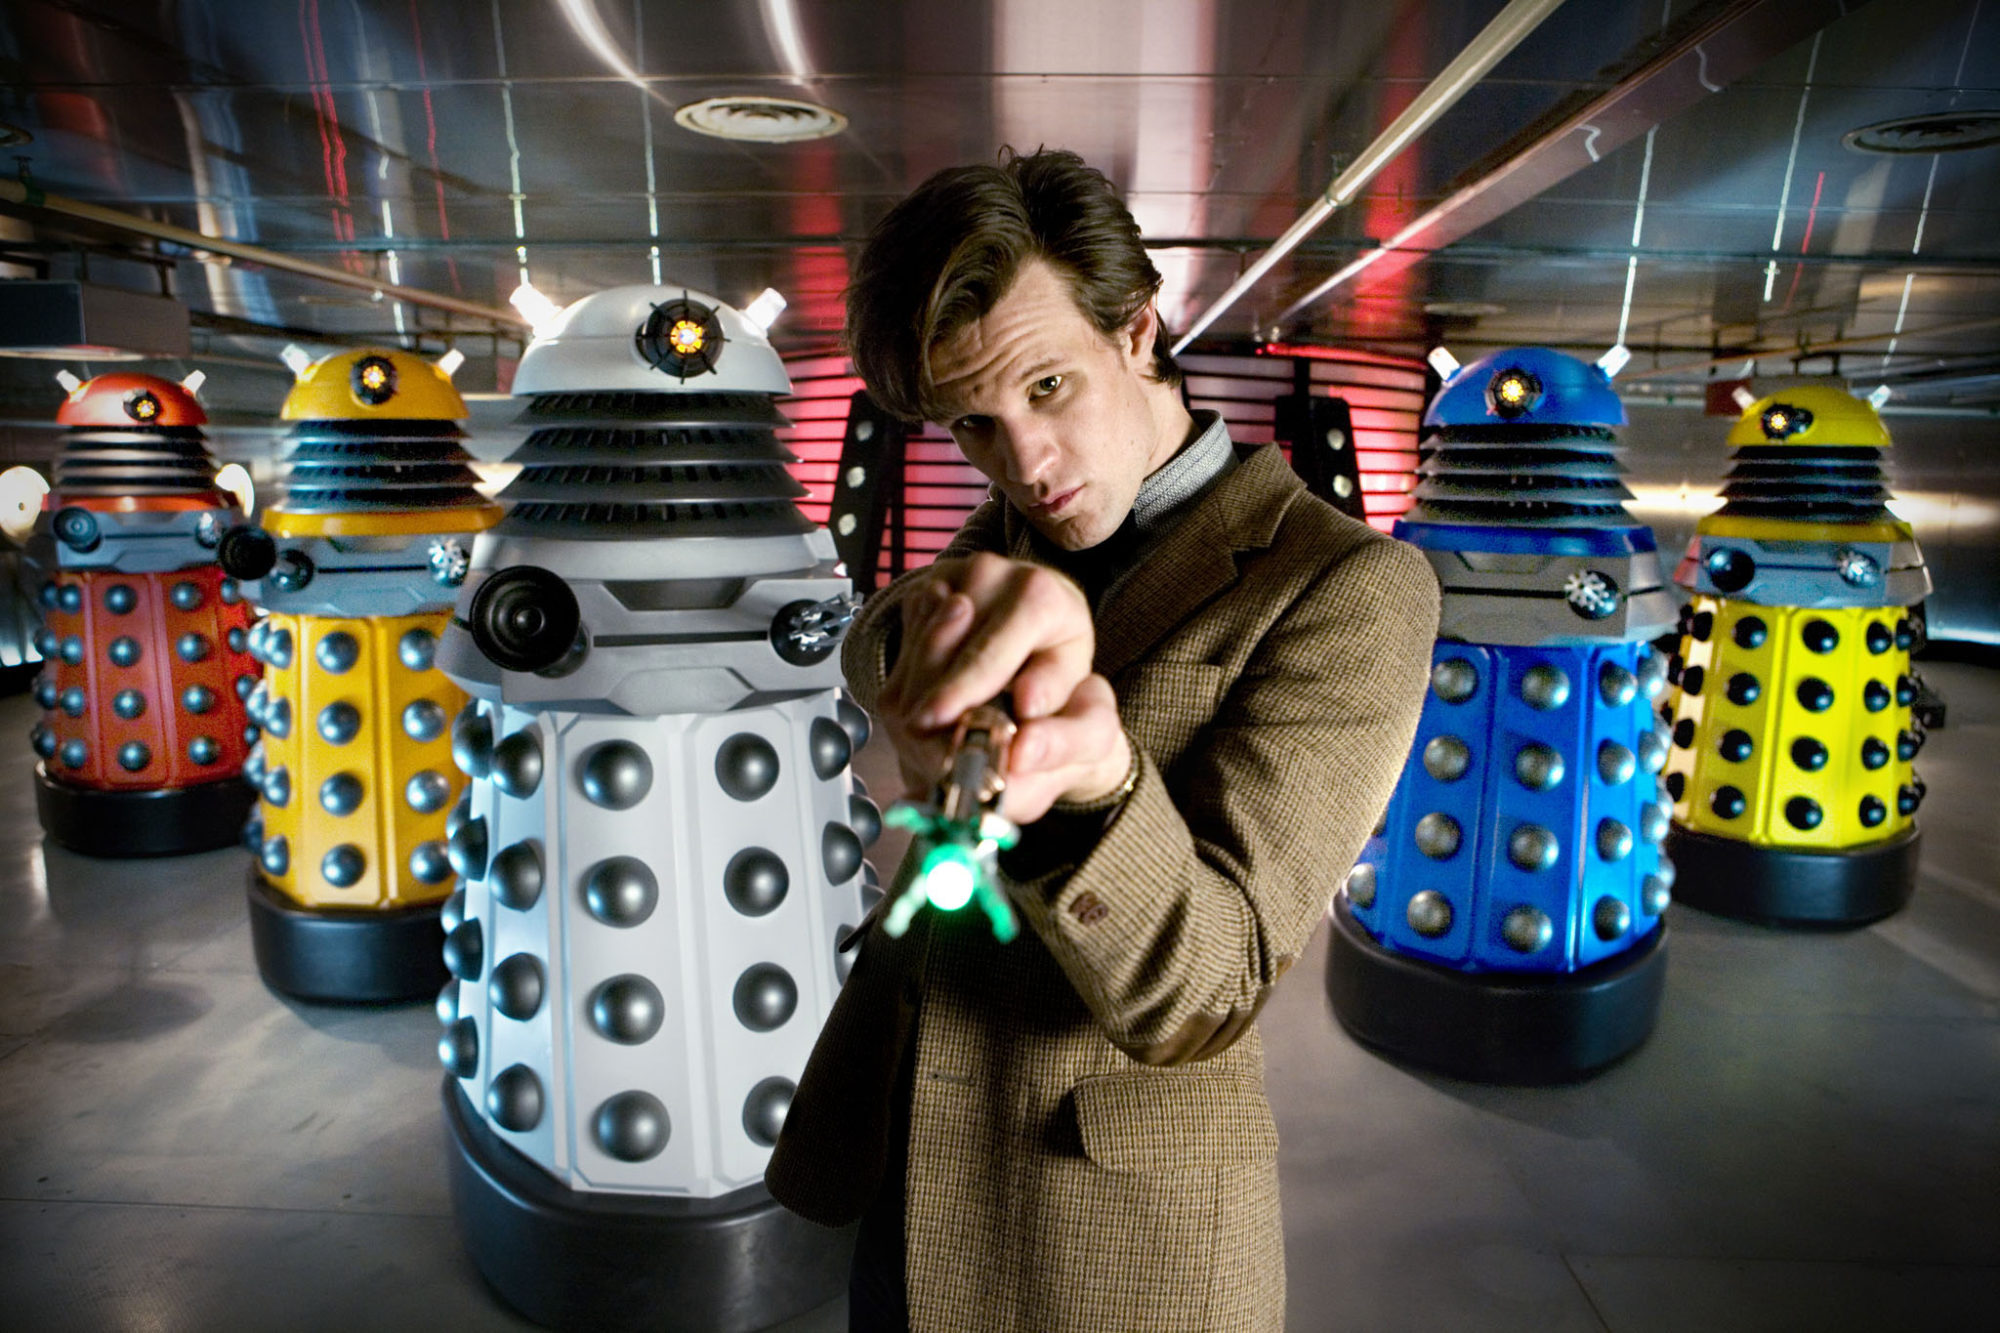 The reveal of the New Paradigm Daleks!